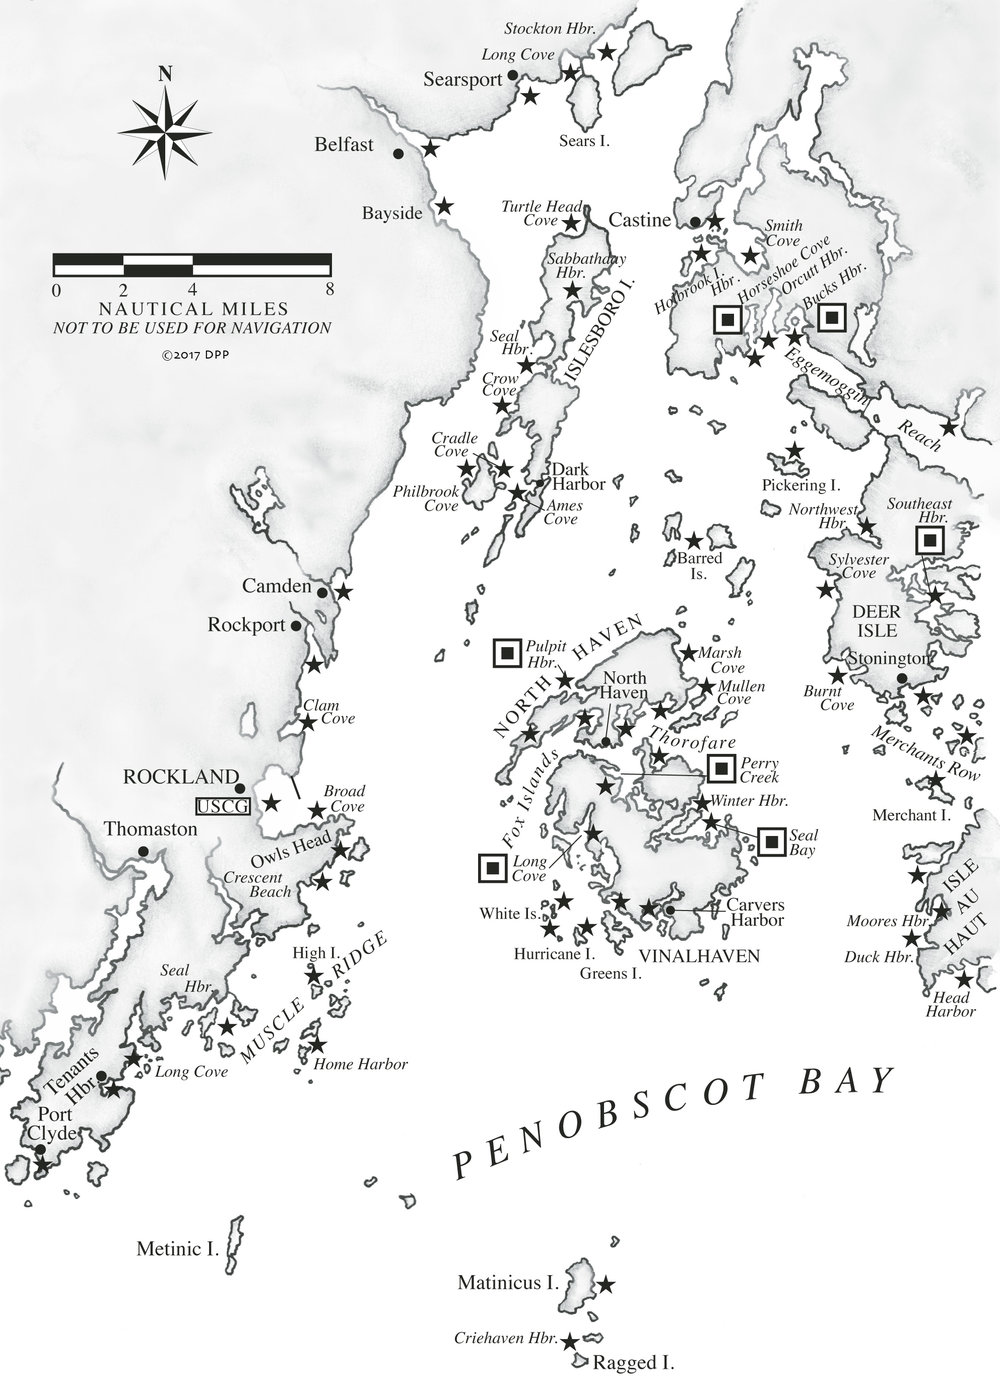 Penobscot Bay A Cruising Guide to the MAINE COAST